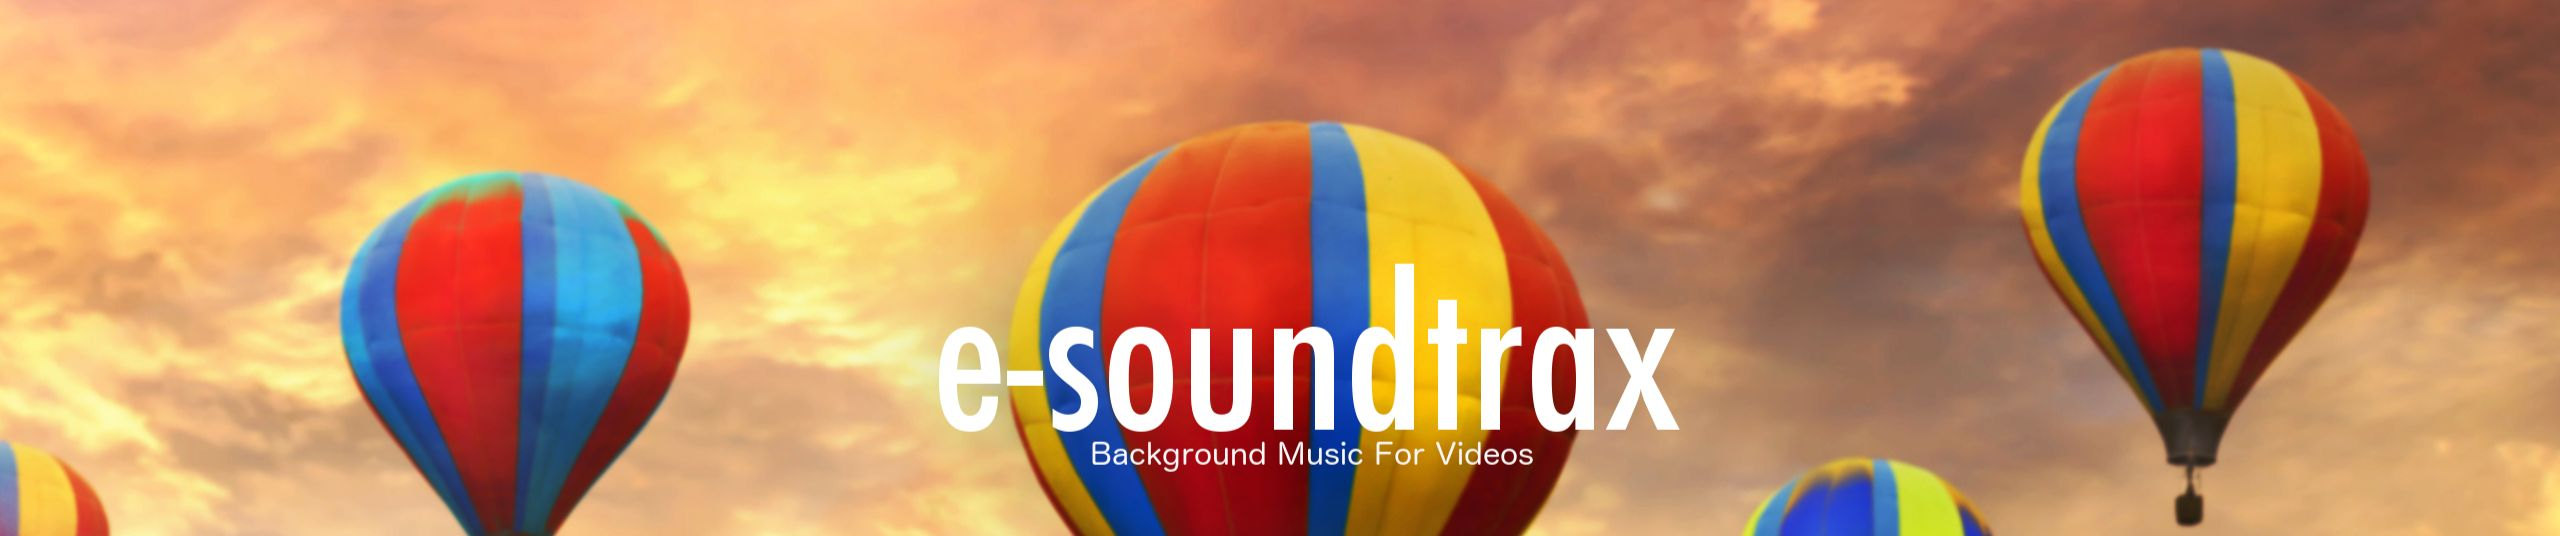 Background Music For Videos | e-soundtrax | Free Listening on SoundCloud